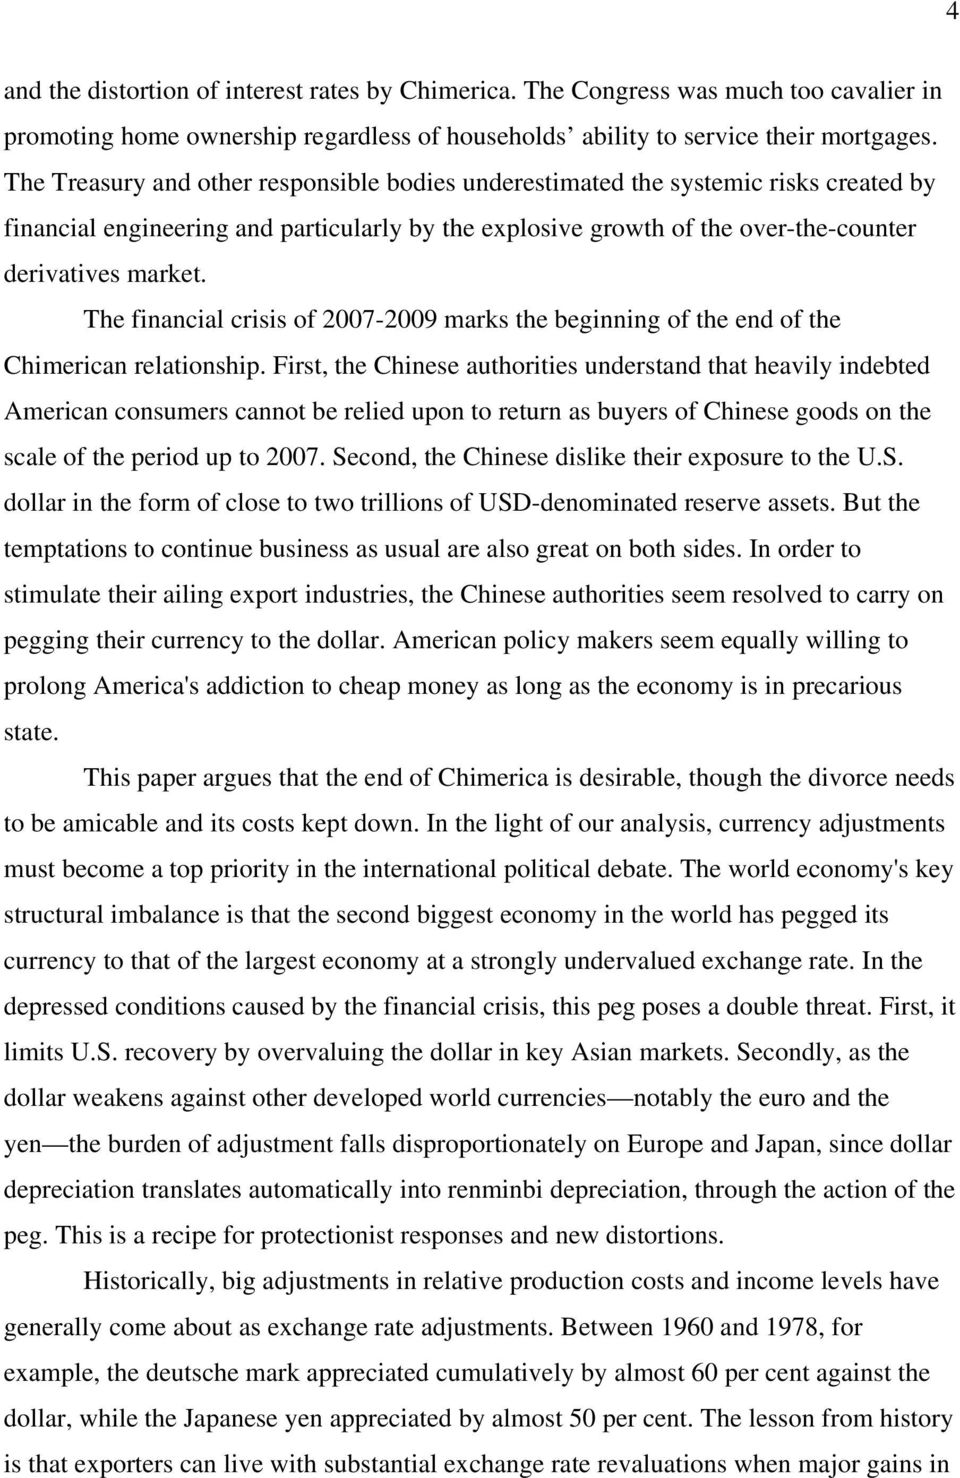 The financial crisis of 2007-2009 marks the beginning of the end of the Chimerican relationship.